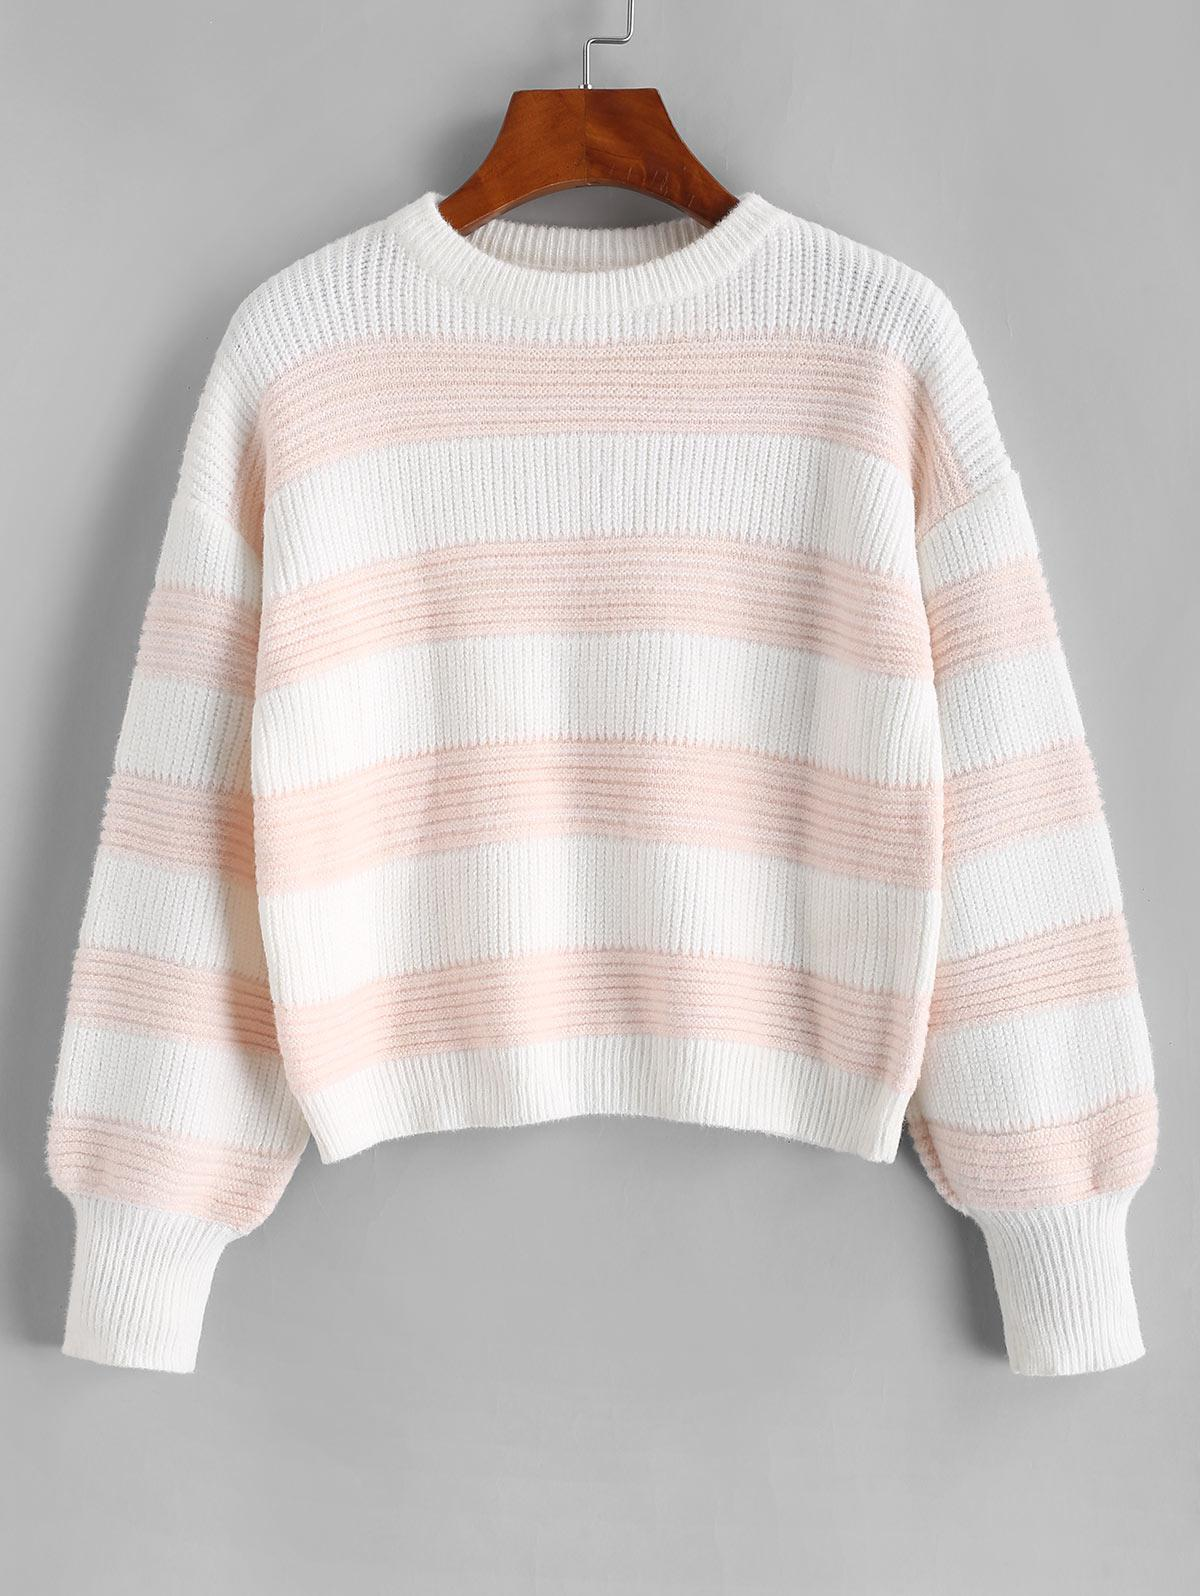 ZAFUL Colorblock Stripes Crew Neck Sweater